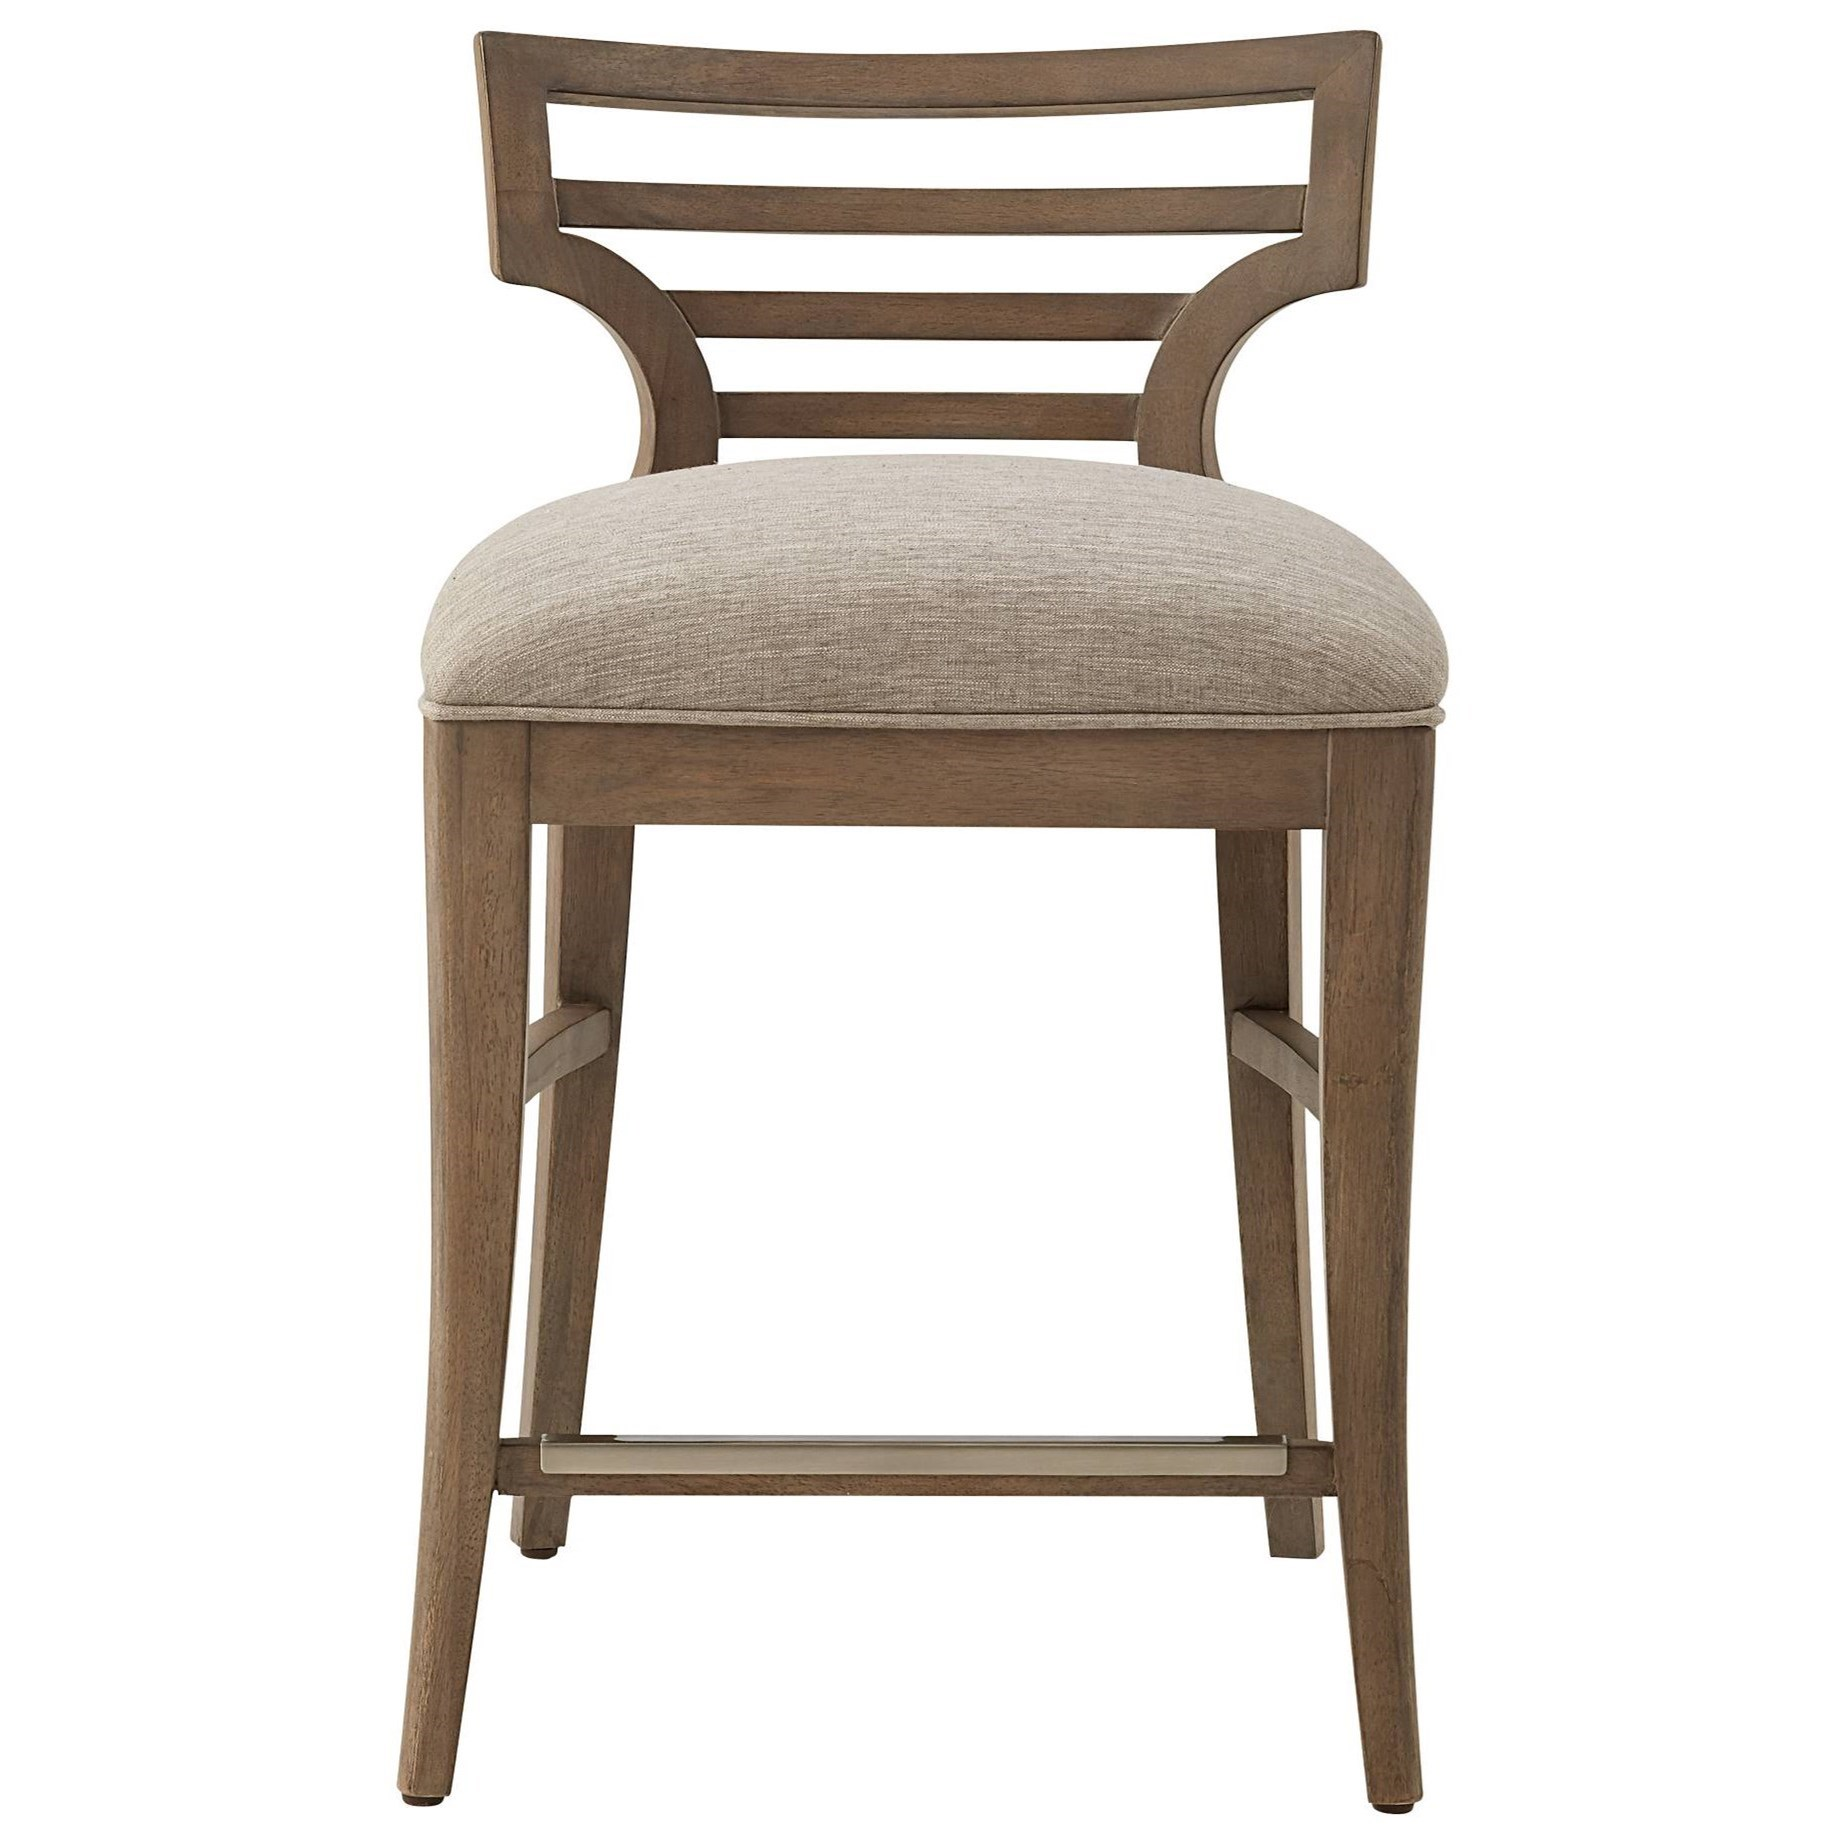 Stanley furniture virage 696 61 72 counter stool with for Stanley furniture